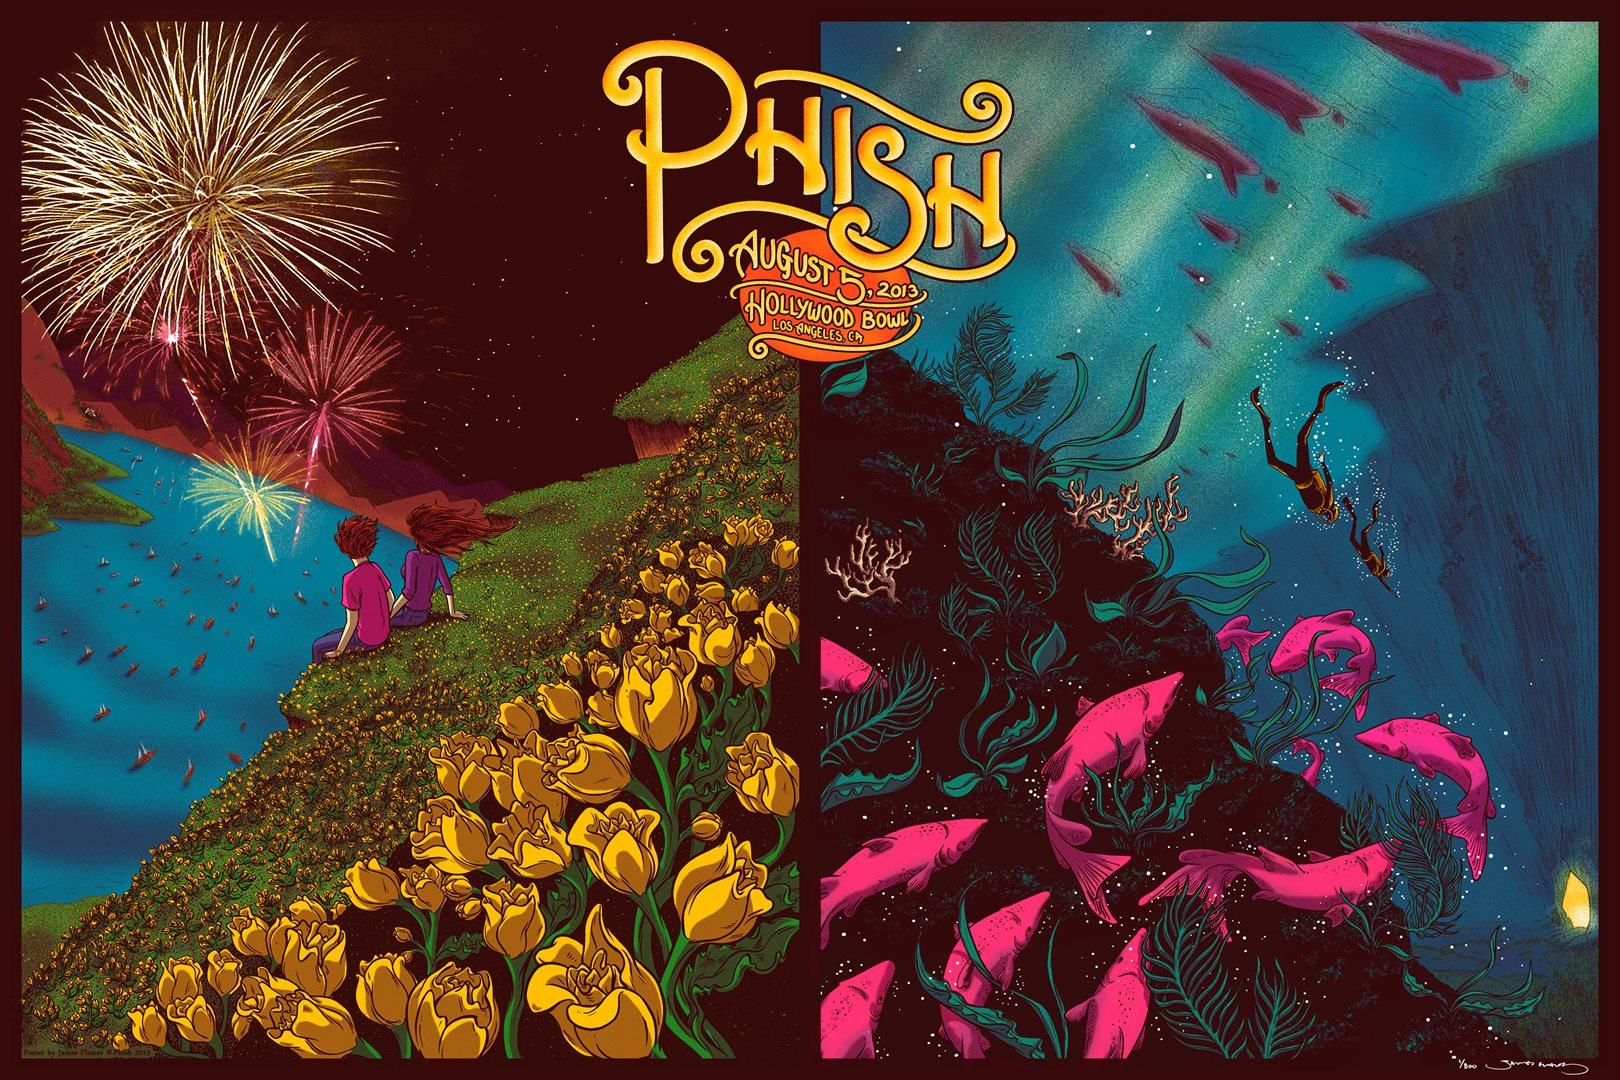 Phish 411posters Page 2